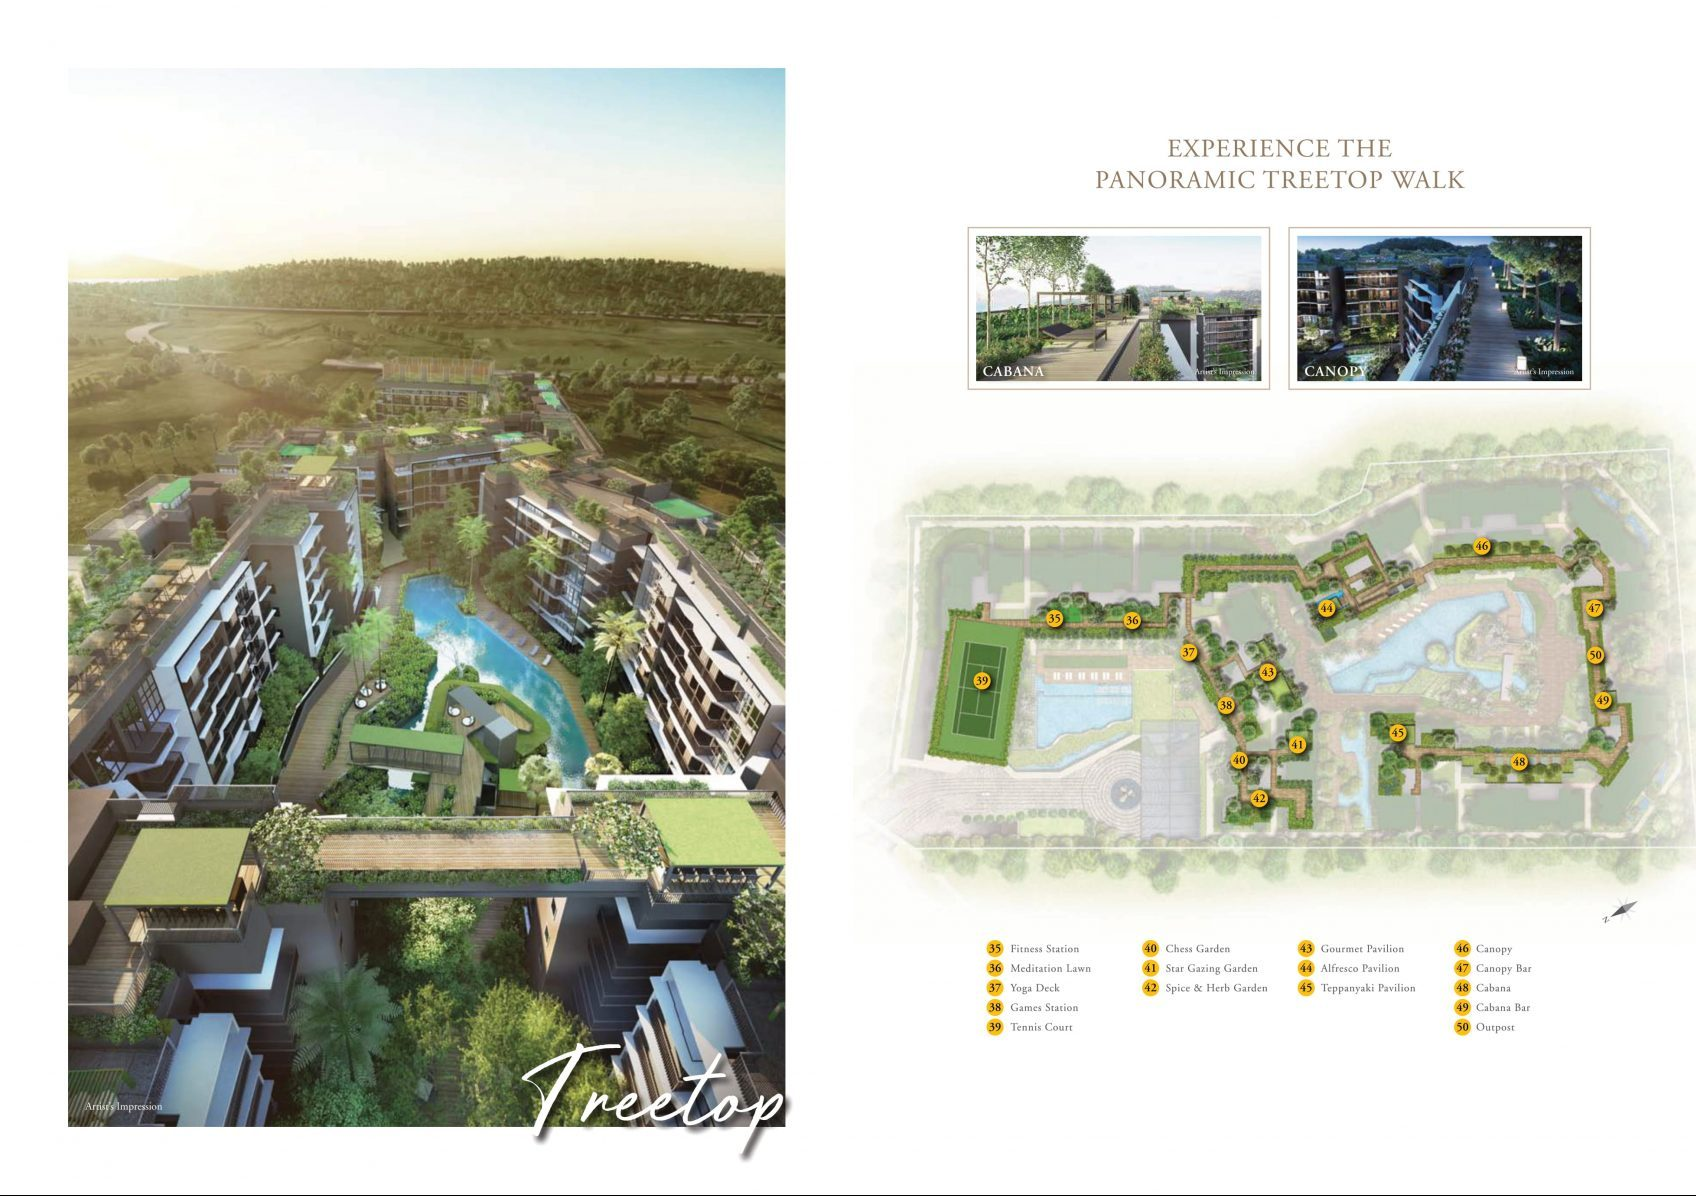 Daintree Residence's site plan and facilities